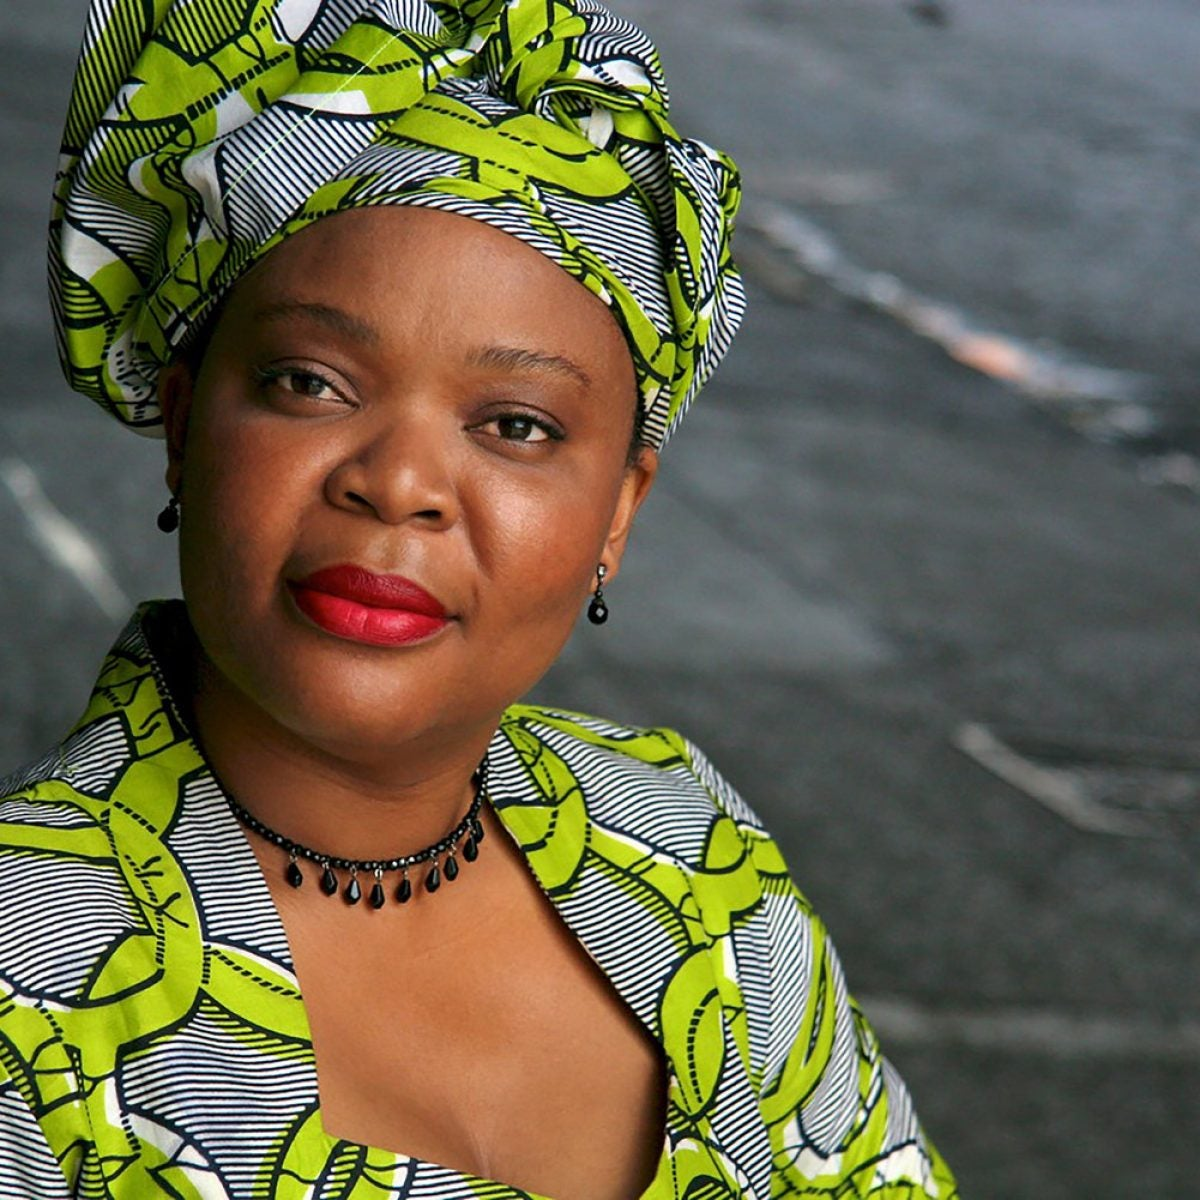 Leymah Gbowee Speaks Out On The Need To Invest In Our Collective Humanity